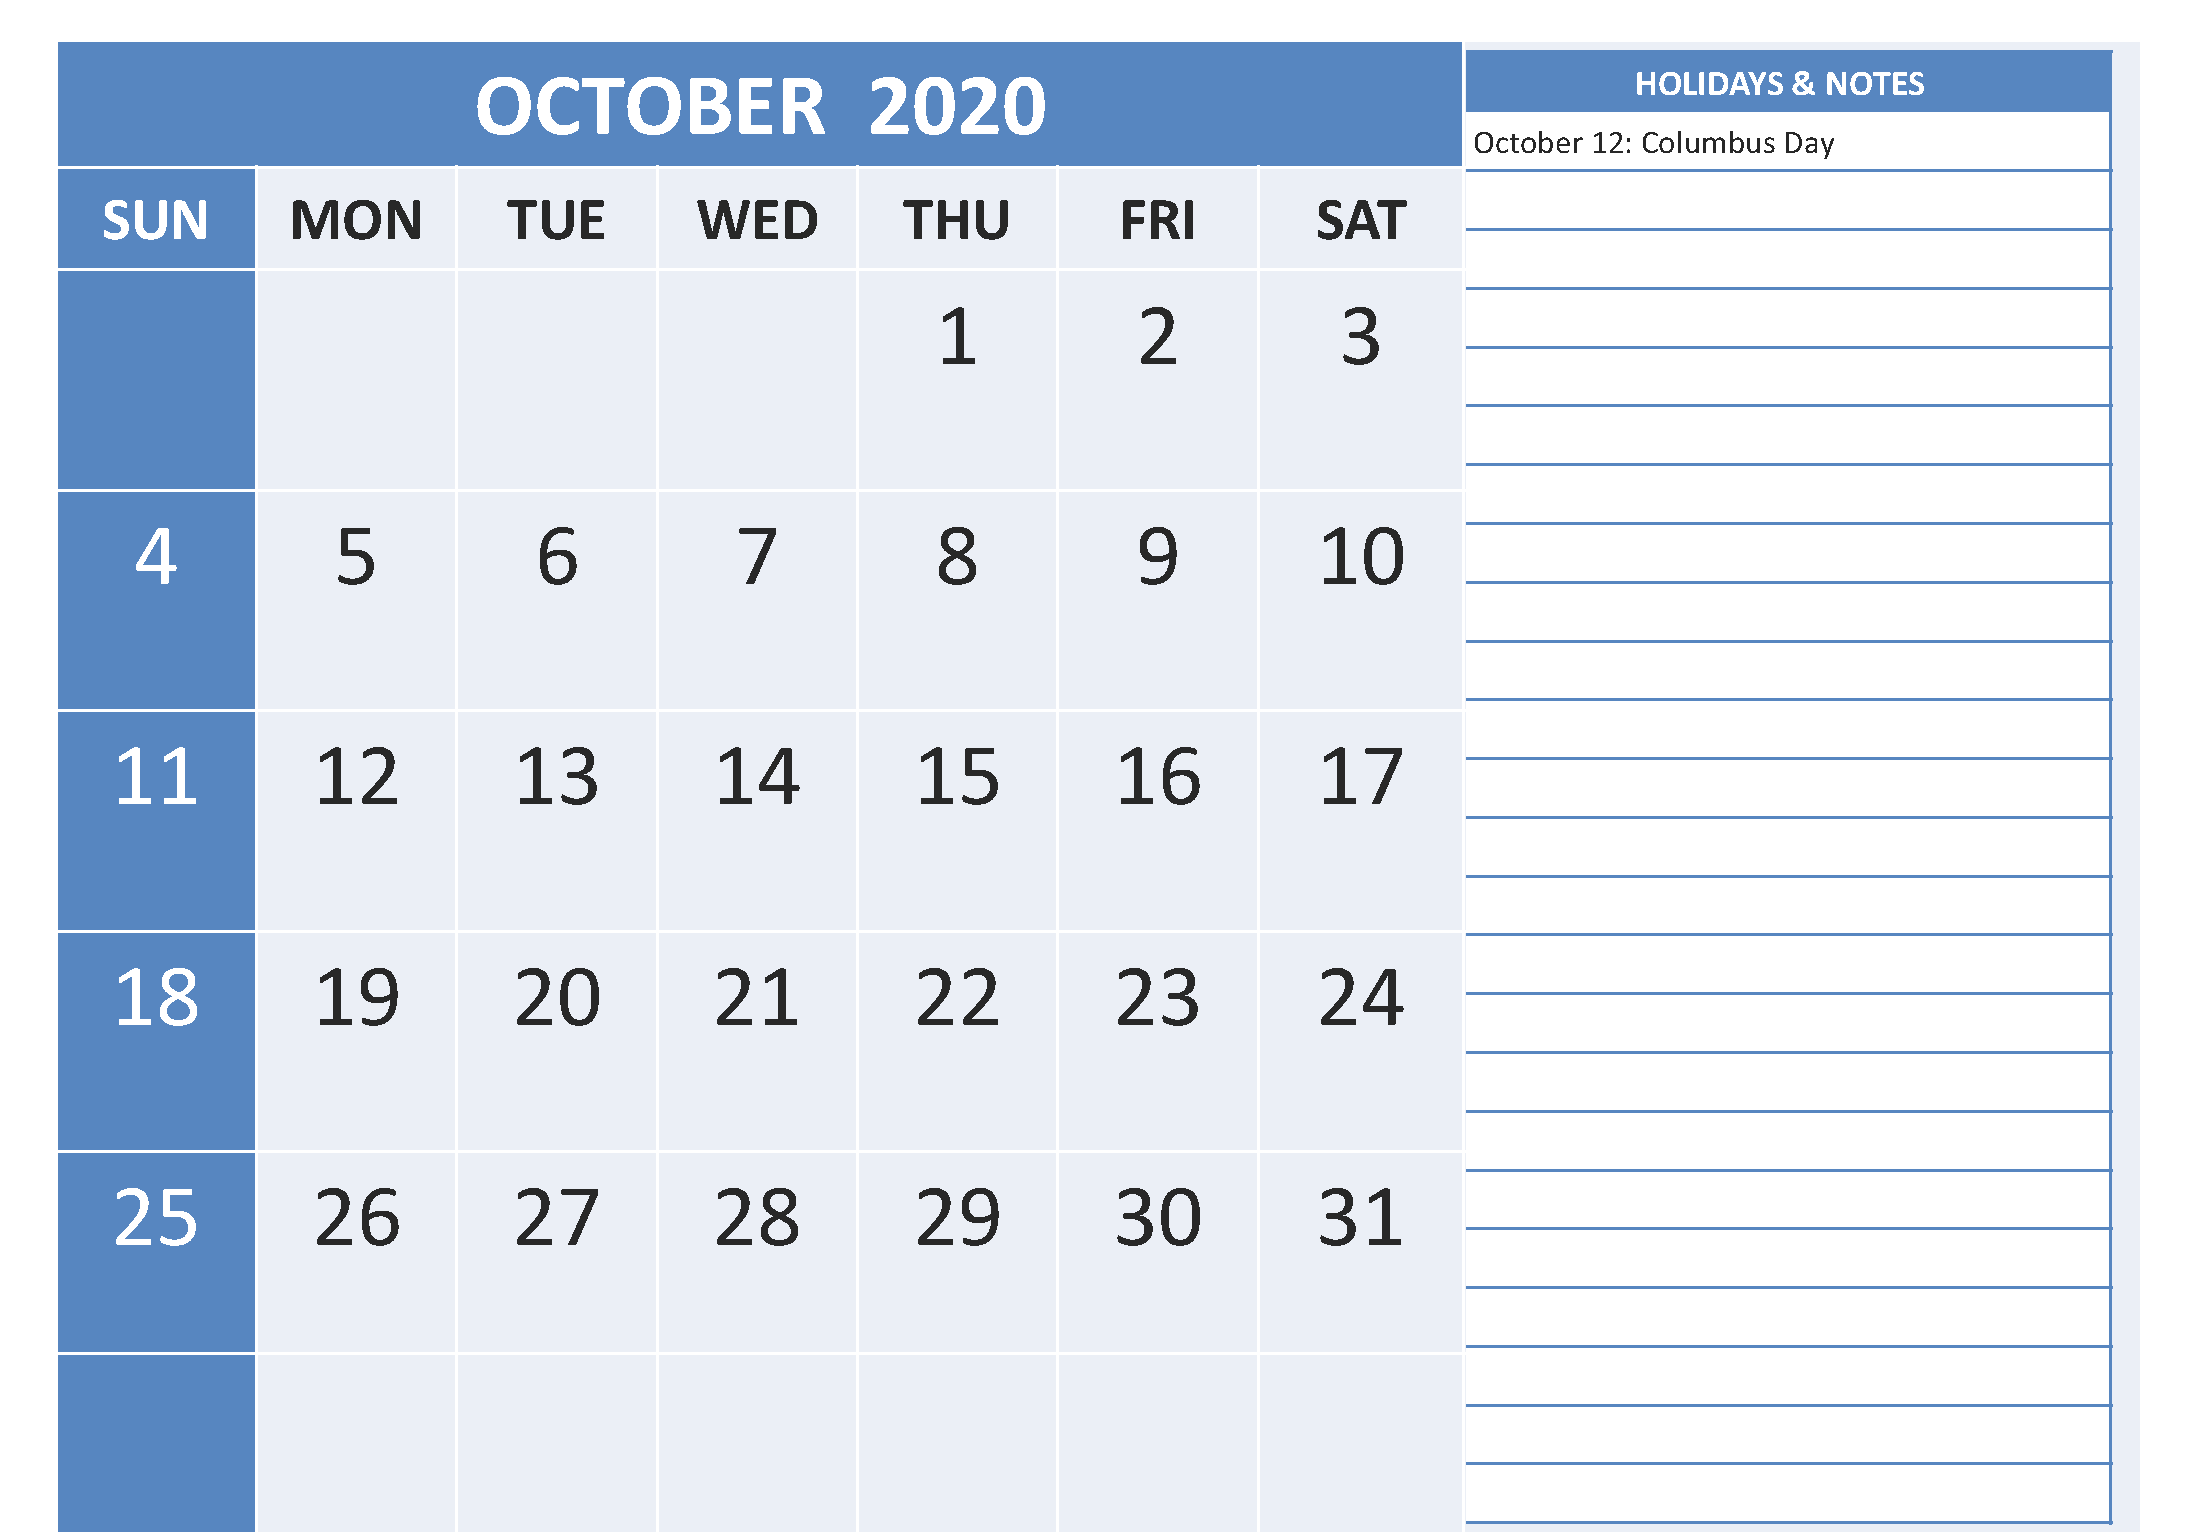 October 2020 Calendar Holidays with Notes